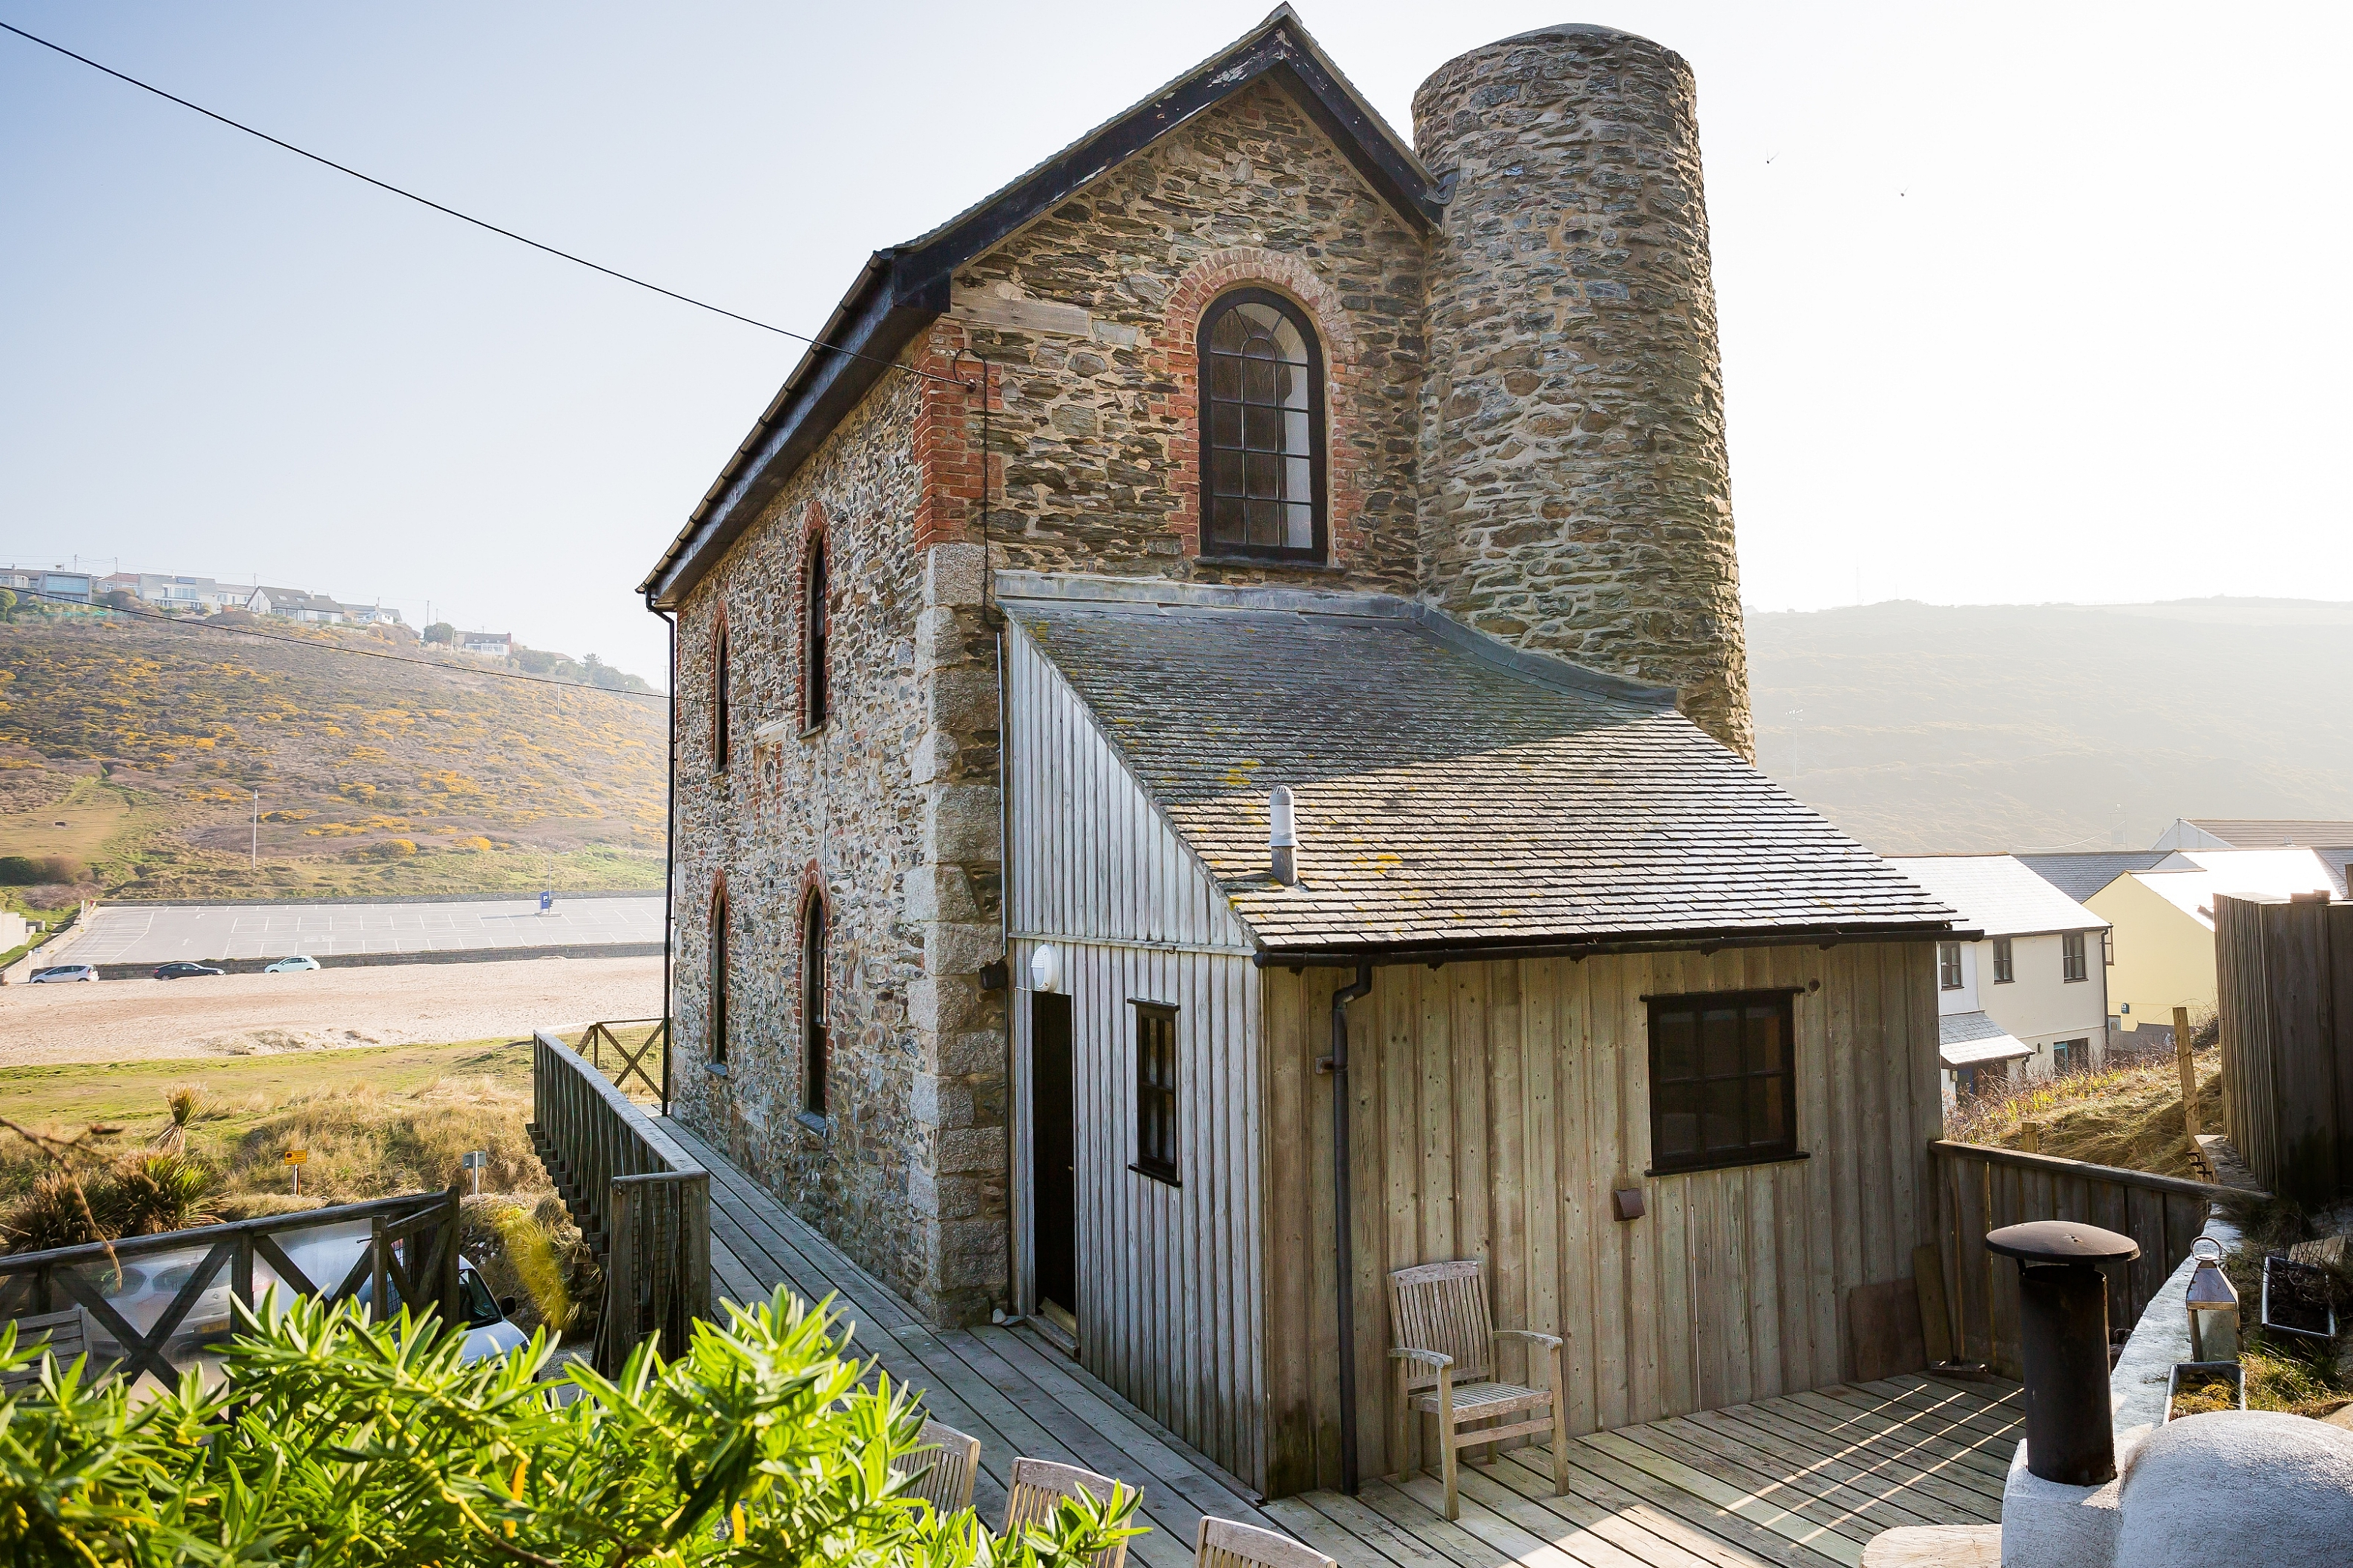 Unique Beachside Listed Cornish Engine House Houses For Rent In Porthtowan England United Kingdom